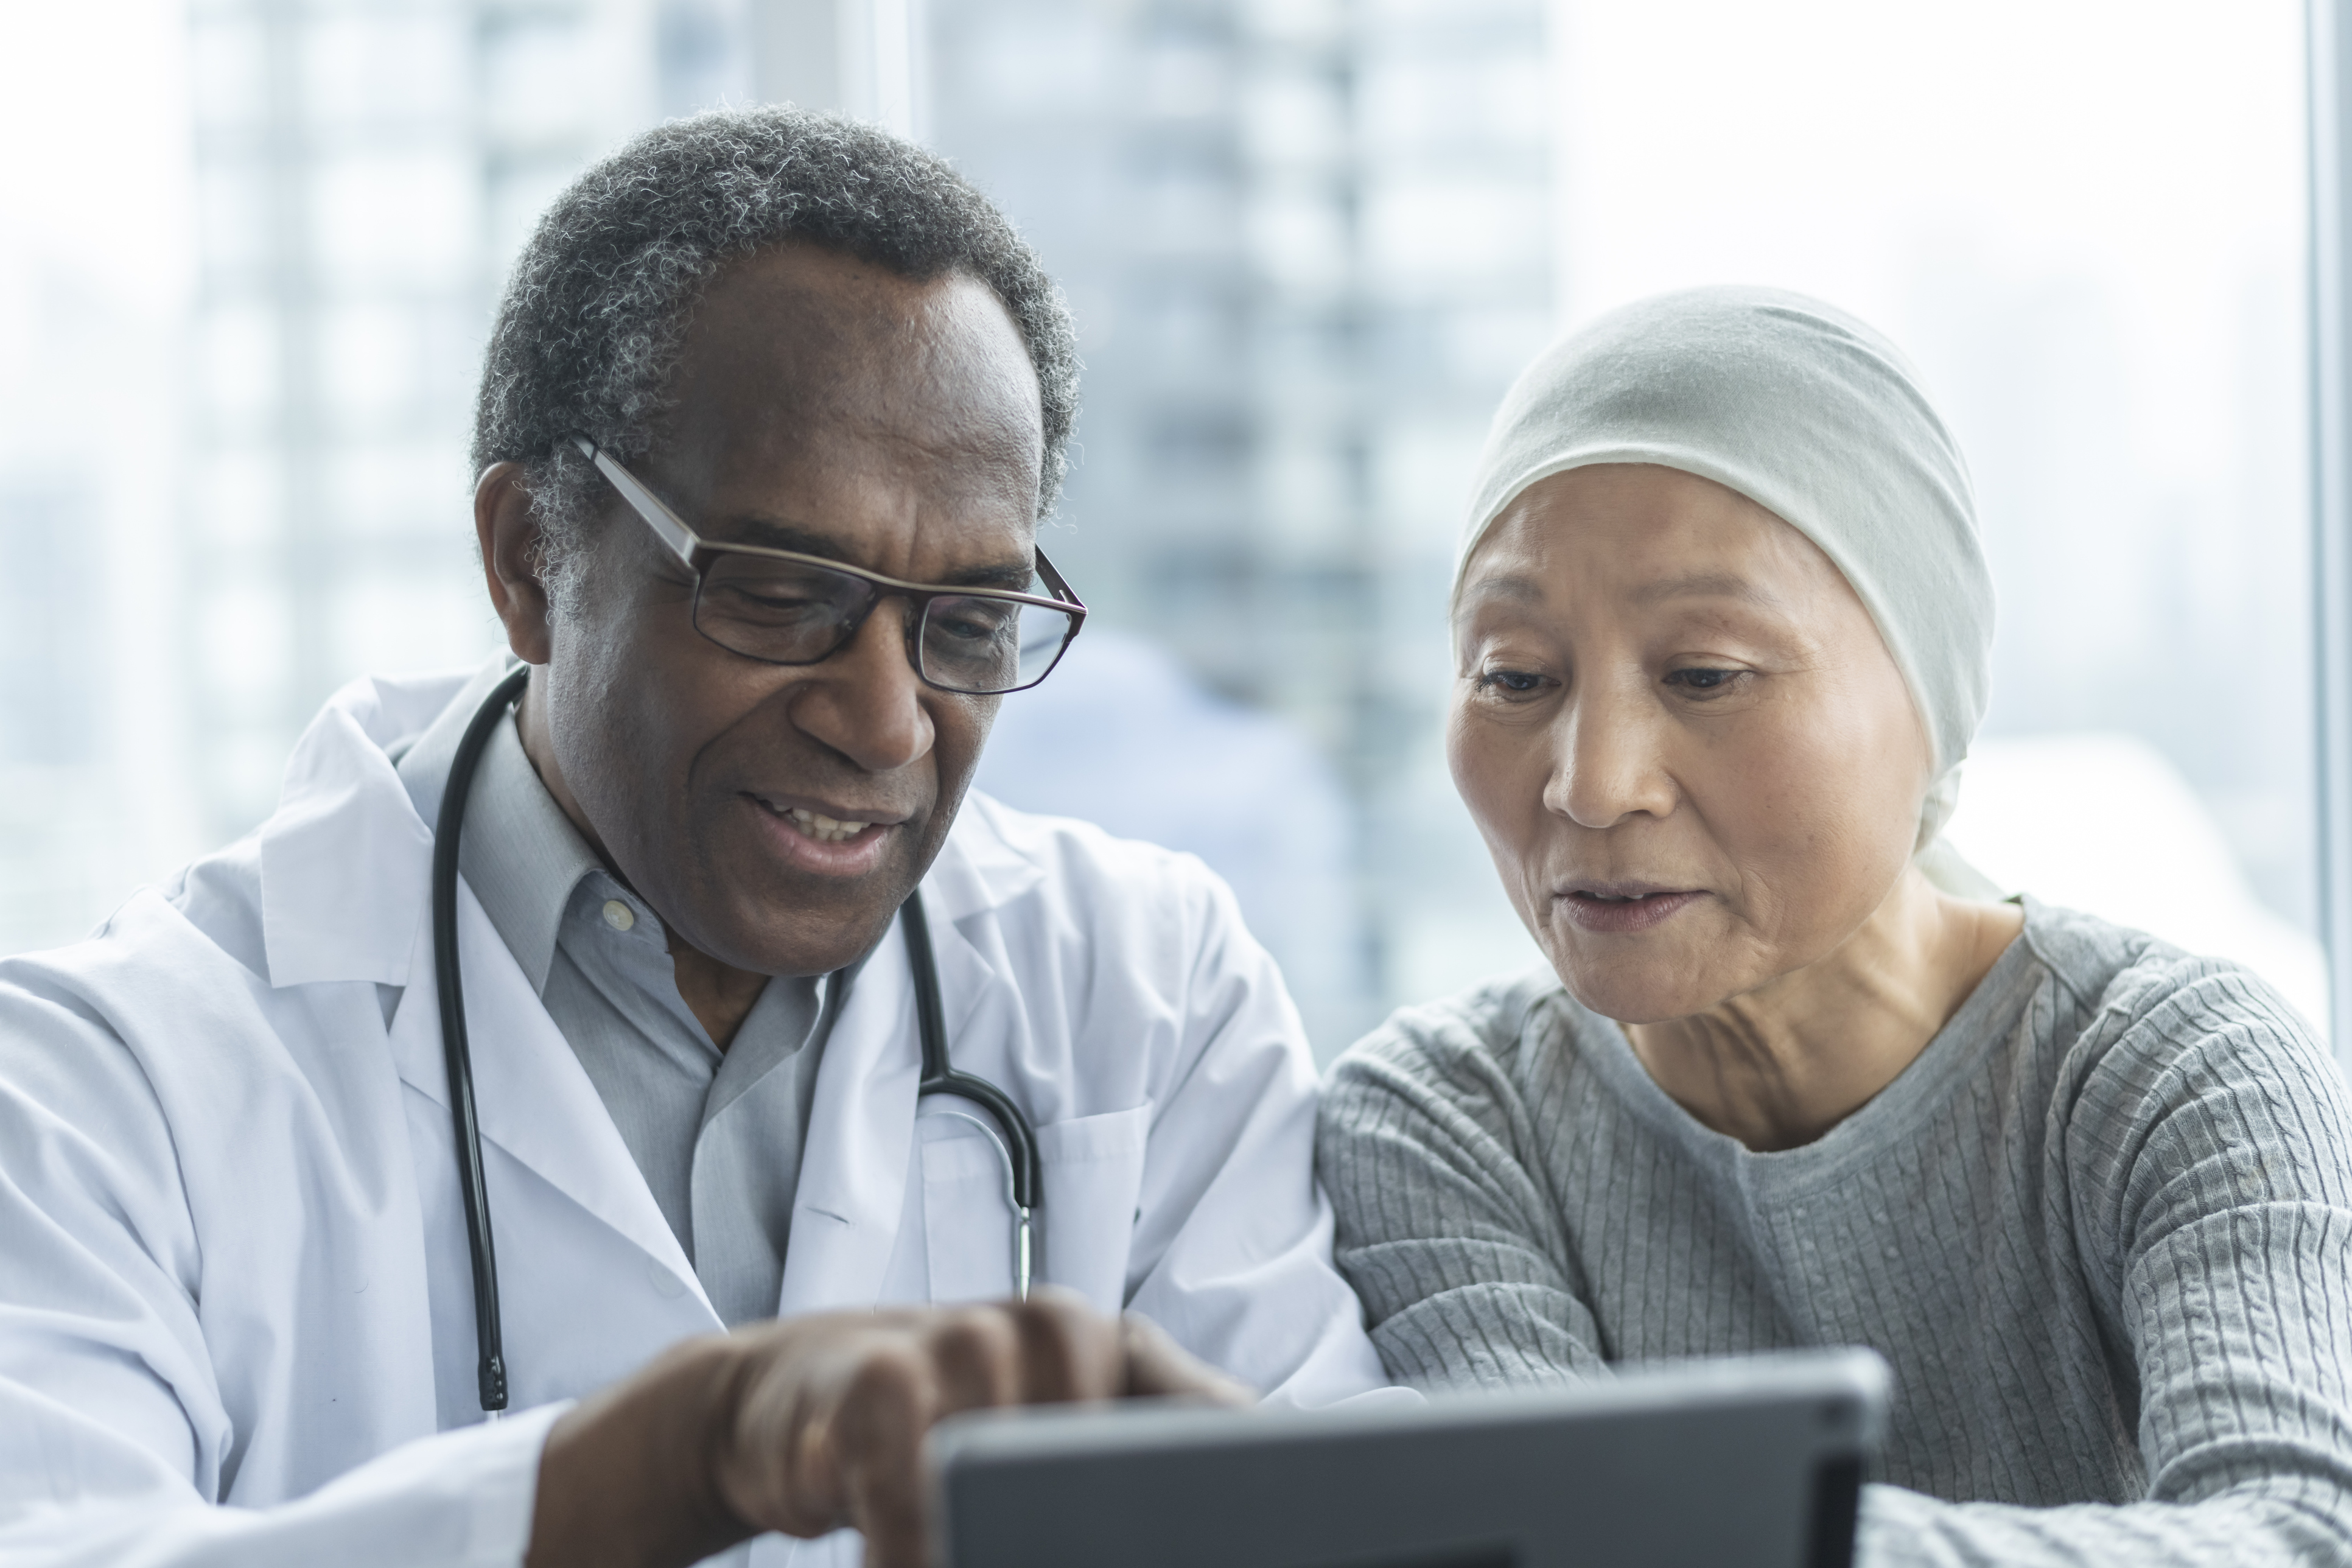 Doctor with cancer patient looking at a tablet